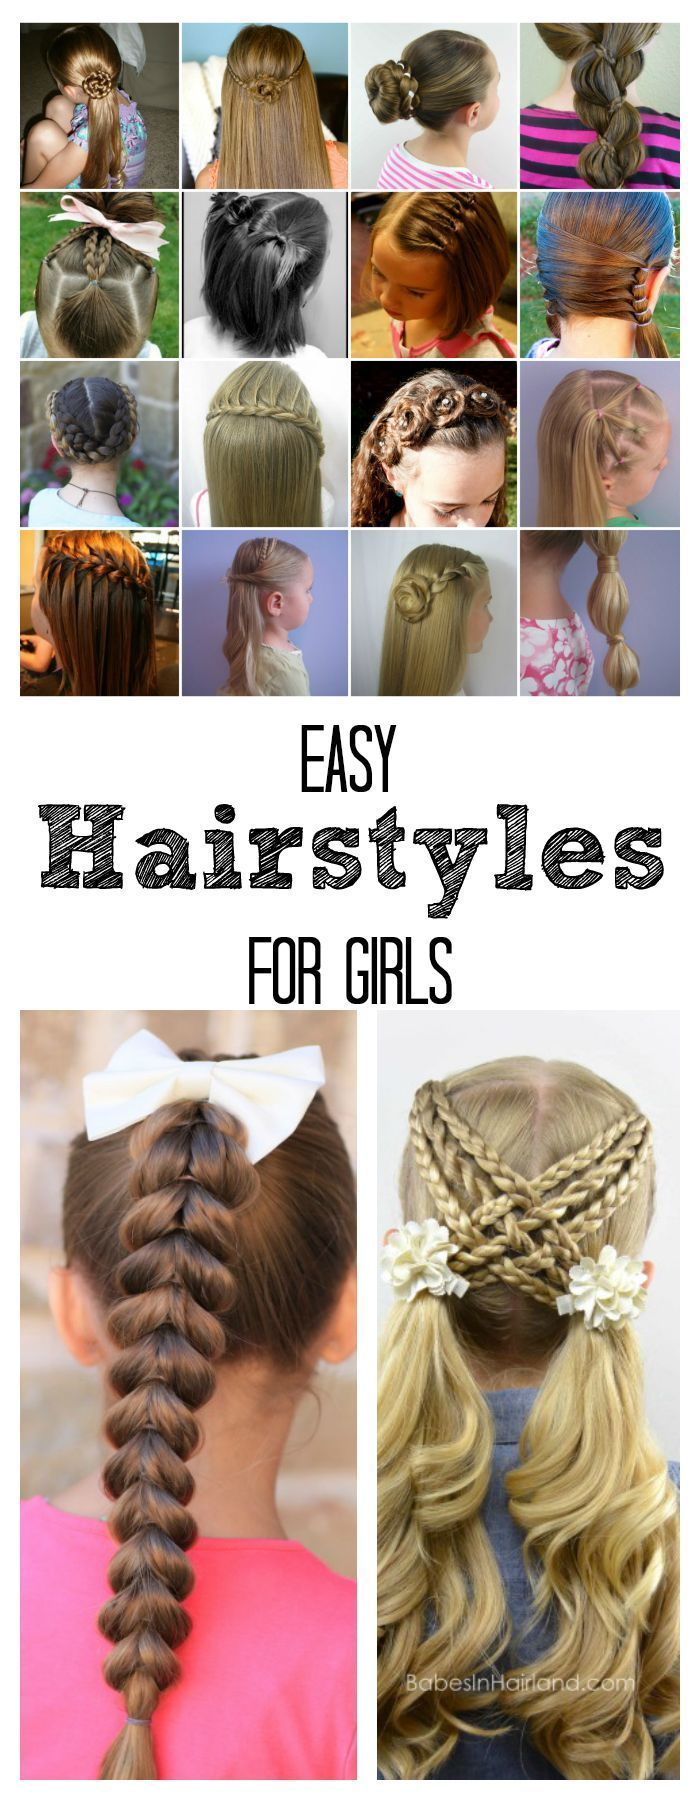 Easy Hairstyles for Girls | Fun hairstyles, Easy hairstyles and ...